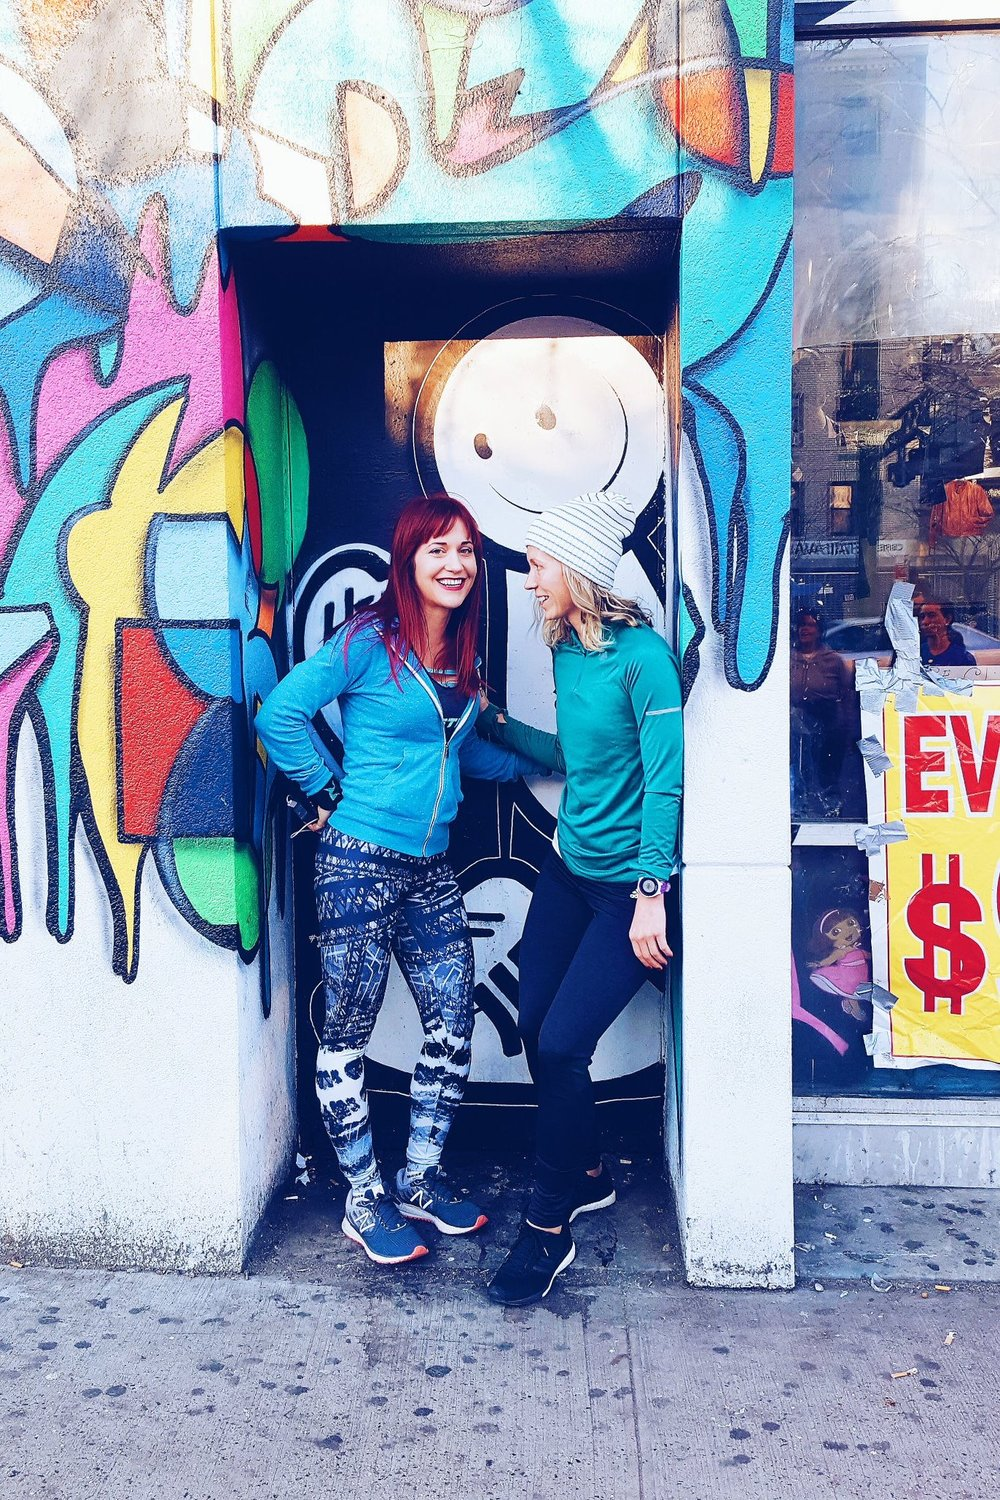 Runstreet founder Marnie Kunz and Girls Run NYC founder Jessie Zapo at the  Oology Collective  mural in LES.